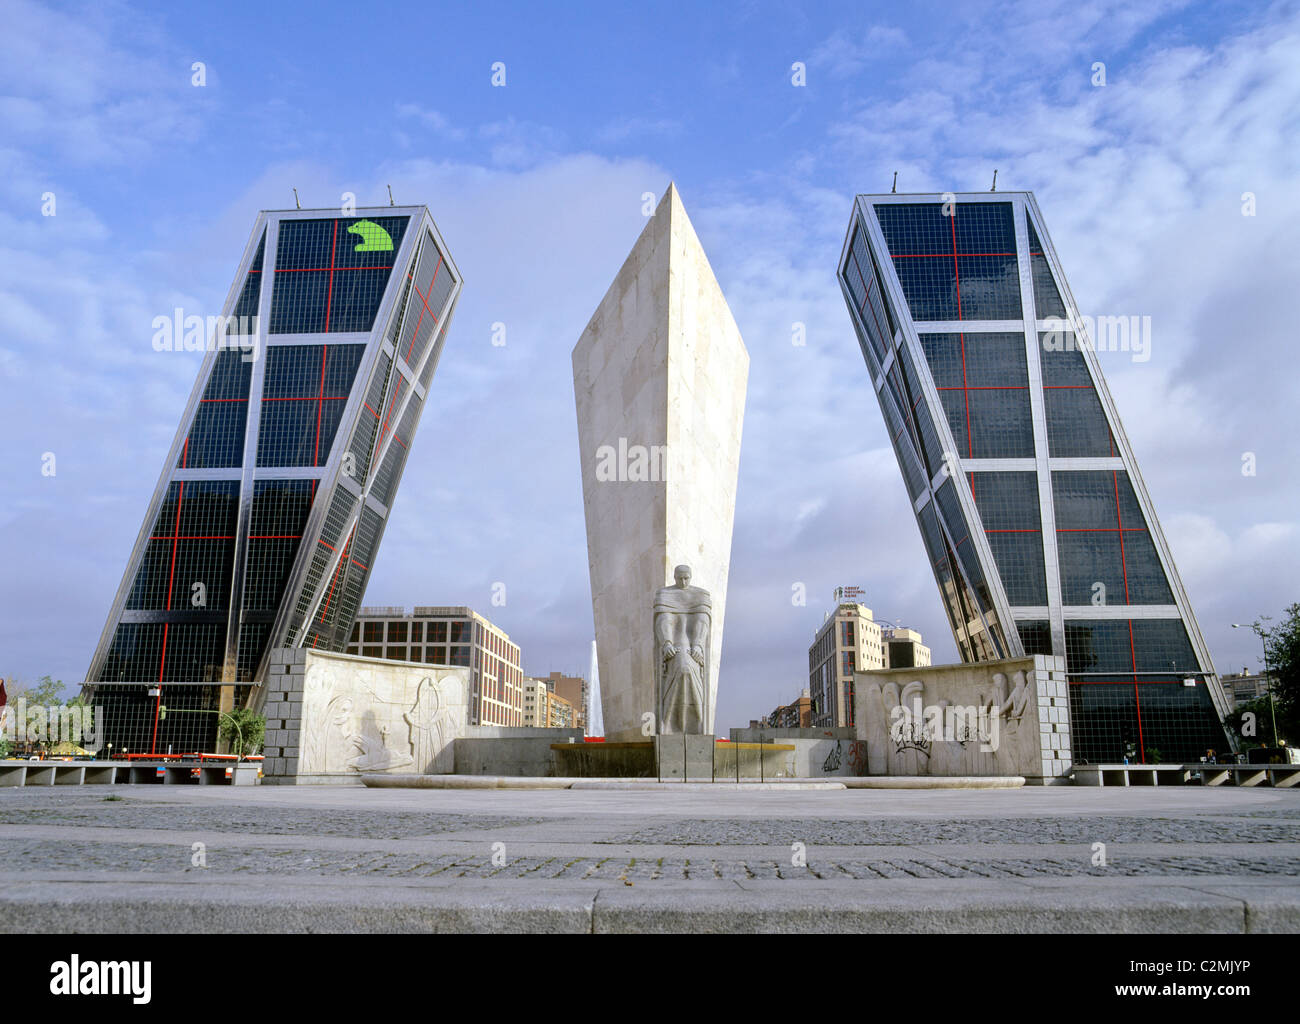 Madrid Plaza Castilla The Monument For Jose Calvo Sotero And The